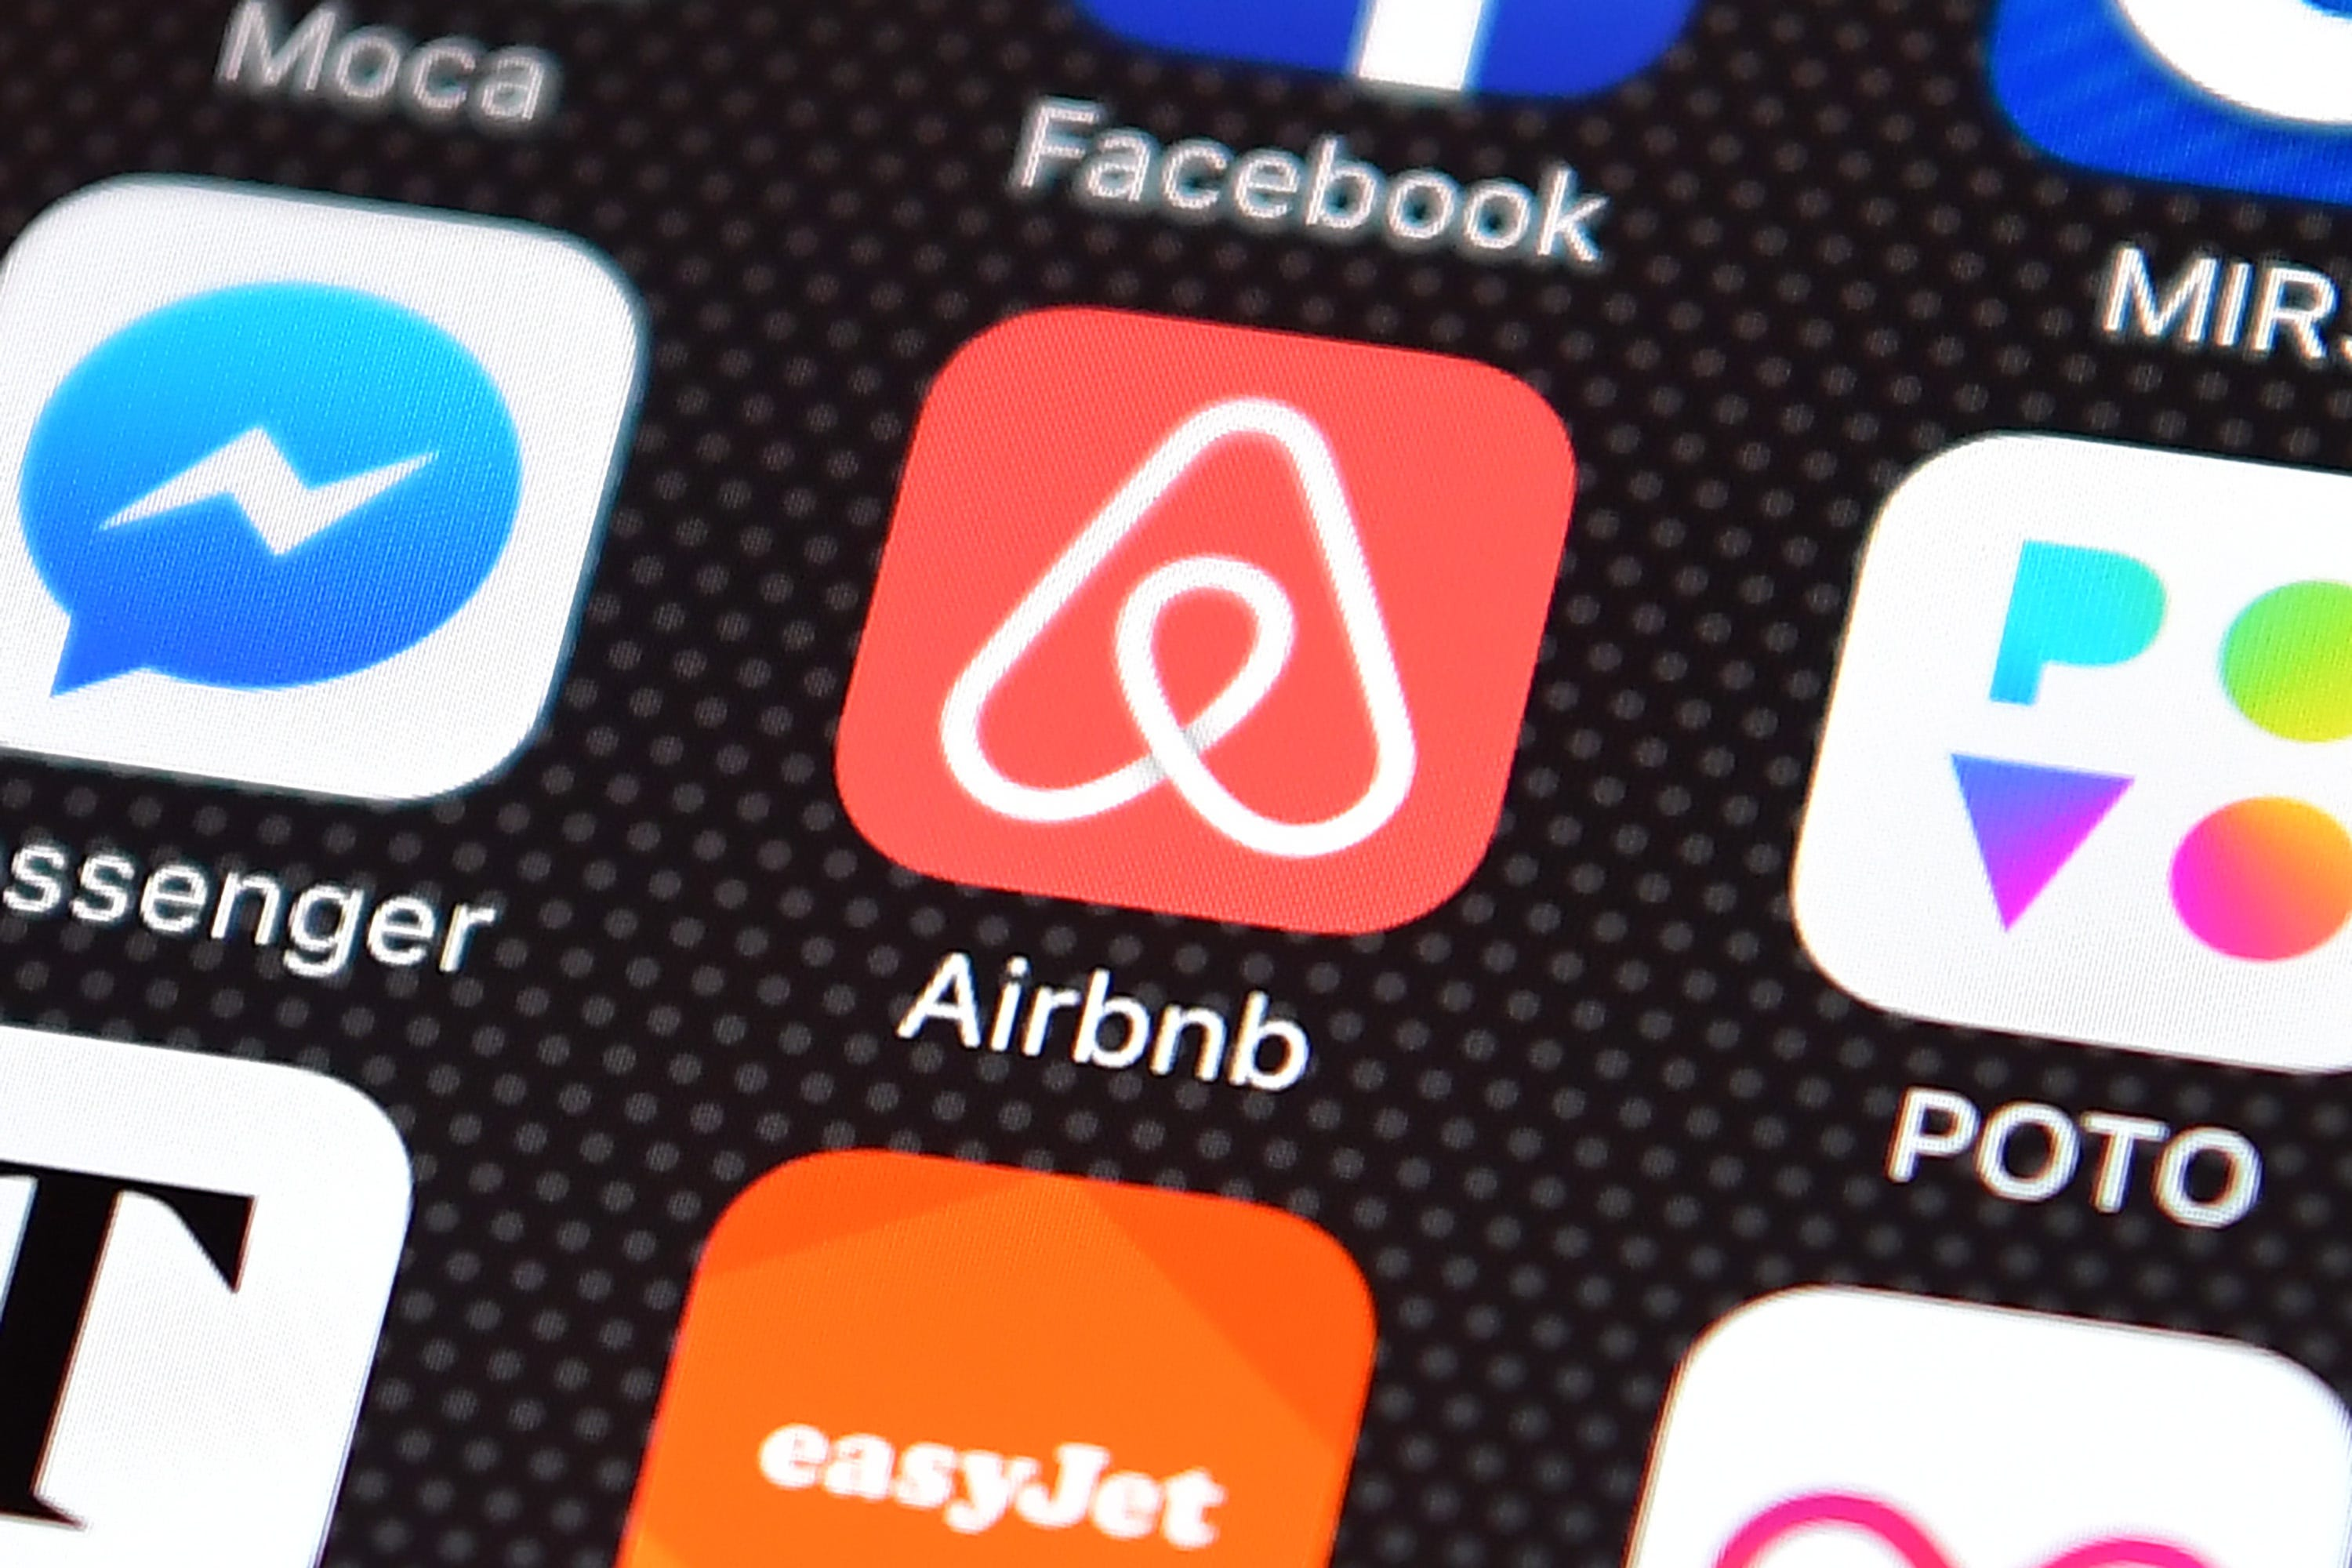 Report: Airbnb paid $7M to tourist raped in Midtown rental